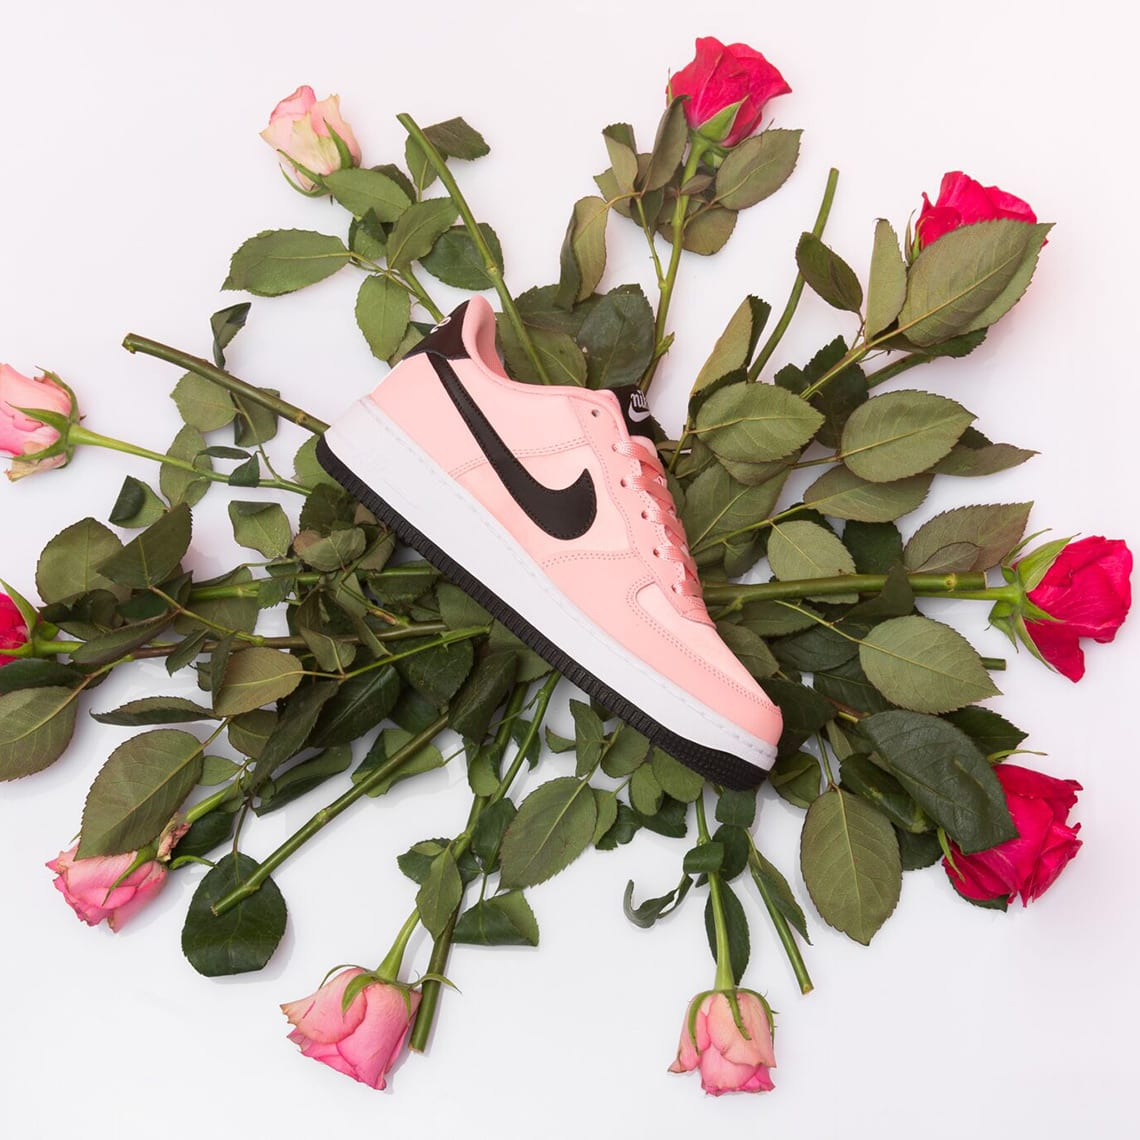 newest 7a72e dcfa6 Nike Puts Love in the Air With a Valentine s Day-Themed Air Force 1